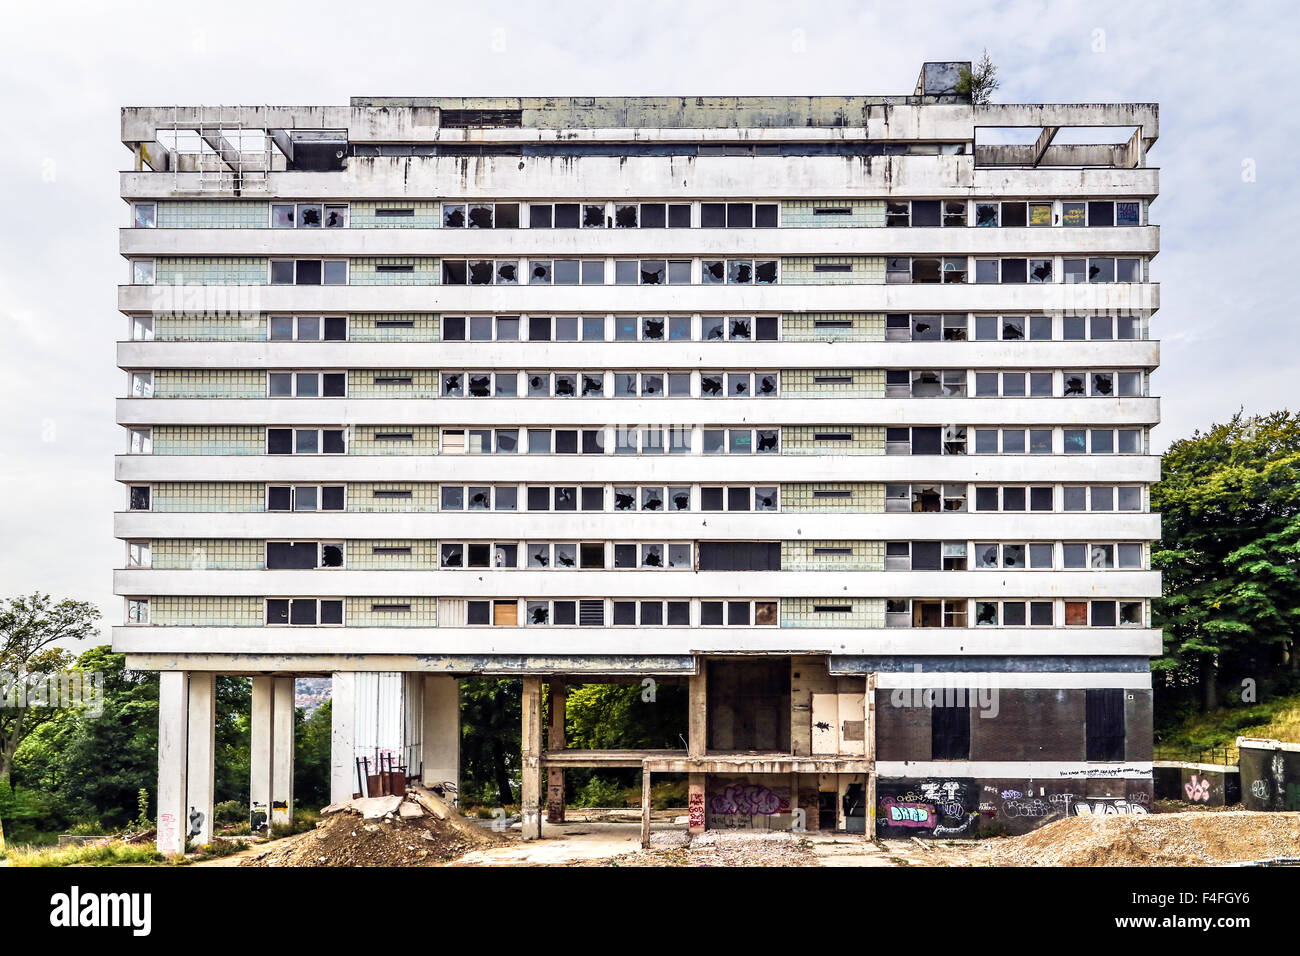 Abandoned, derelict highrise apartment residential tower block building MDU - Stock Image